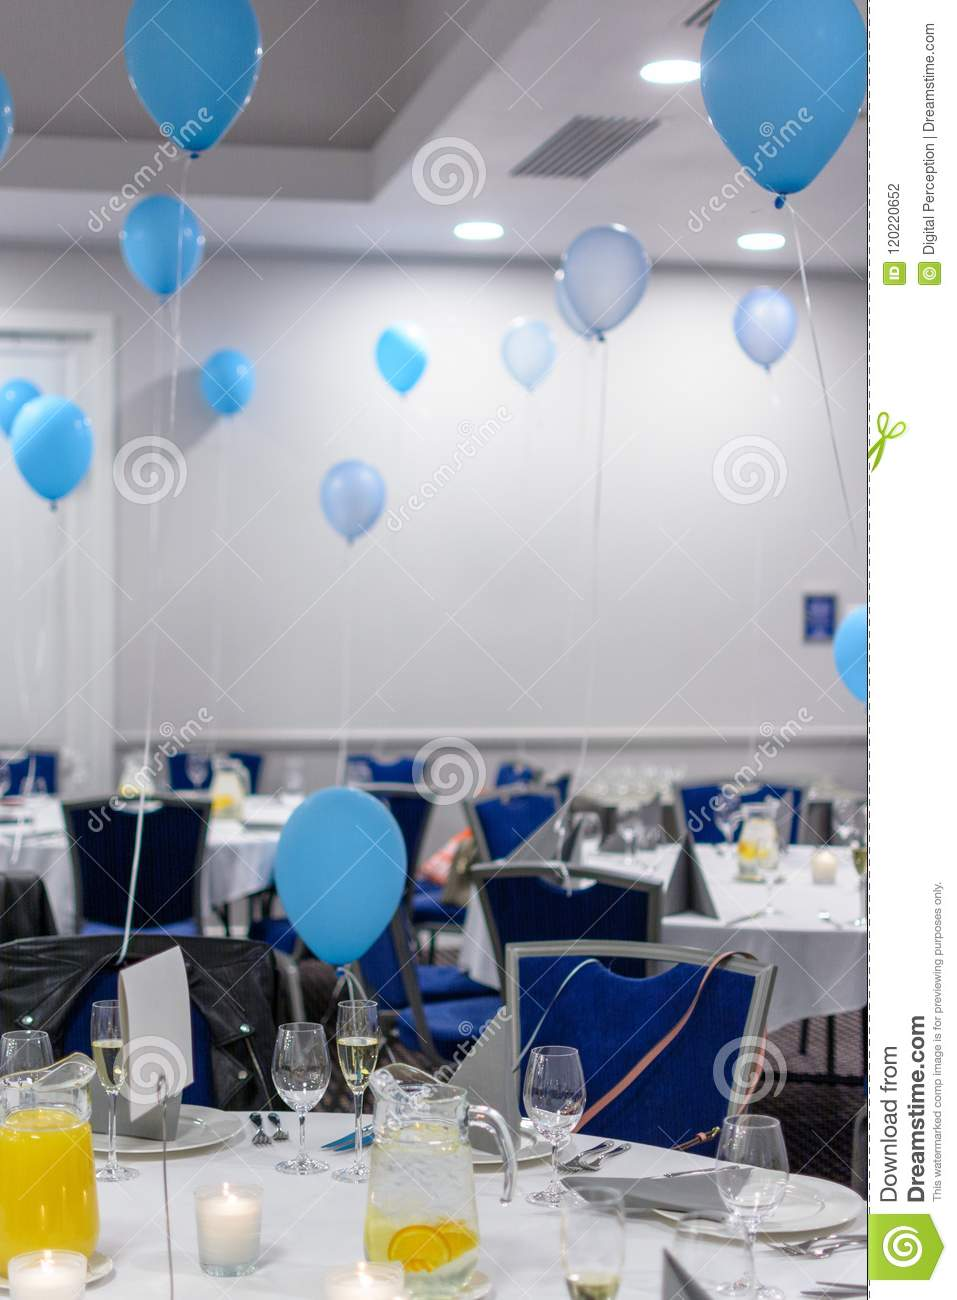 Birthday Party Set Up With White Stylish Tablecloth And Coloured Balloons